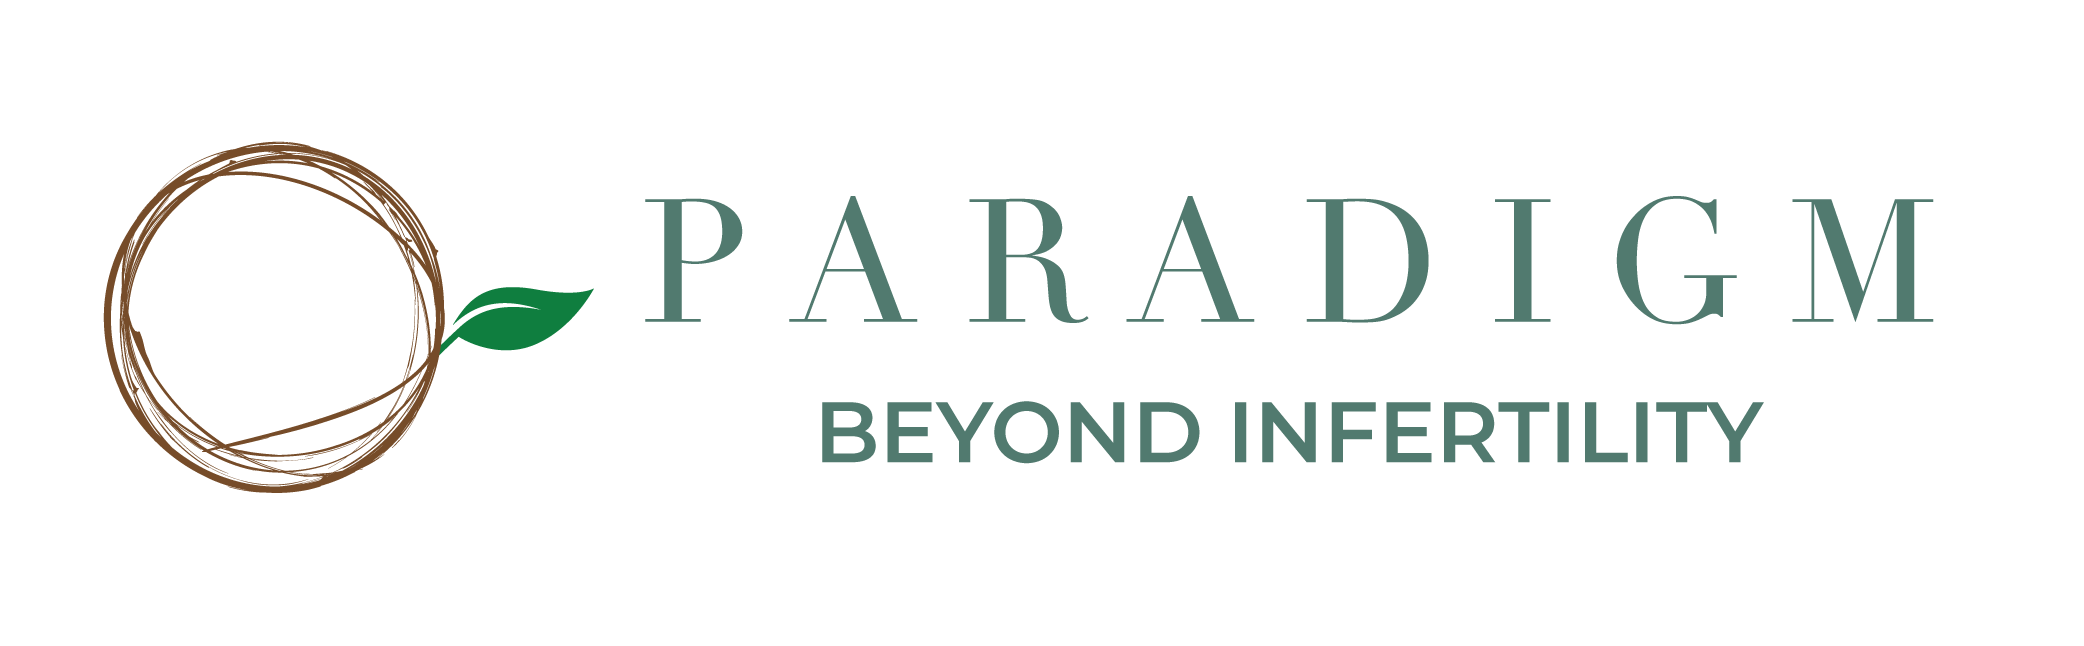 Paradigm: Beyond Infertility